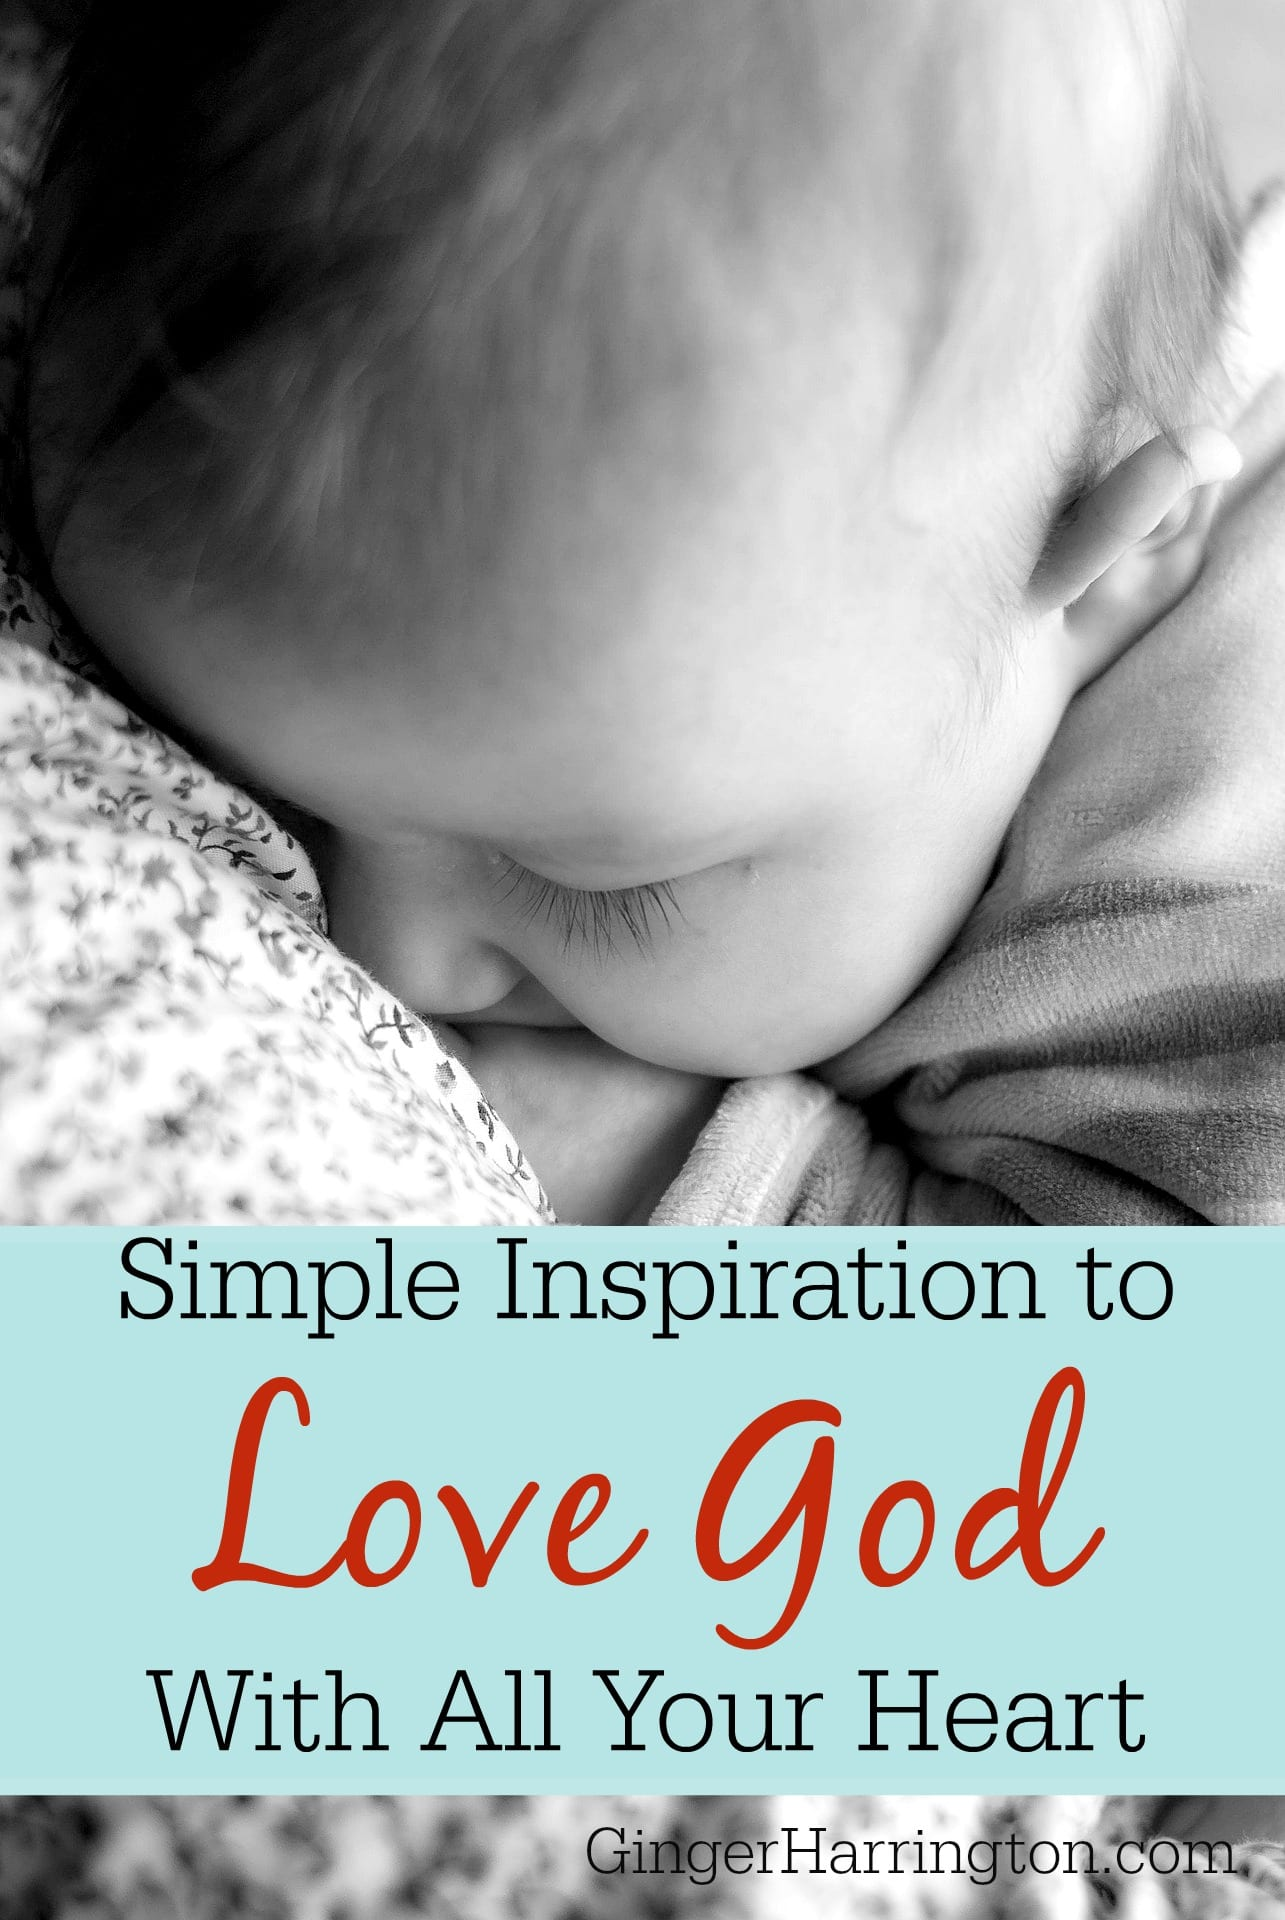 Simple Inspiration to Love God with All Your Heart